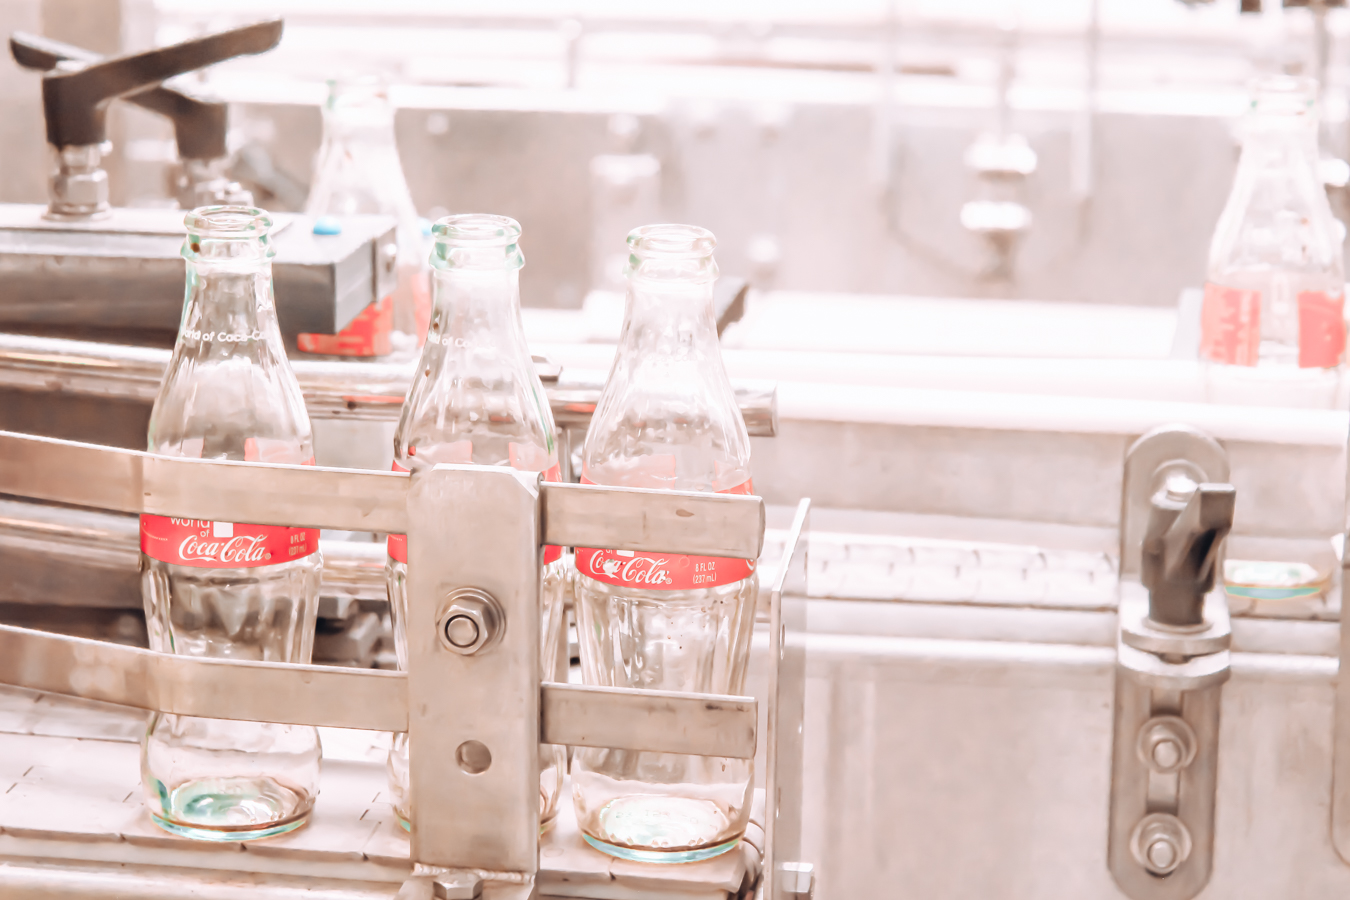 Bottles at the World of Coca-Cola